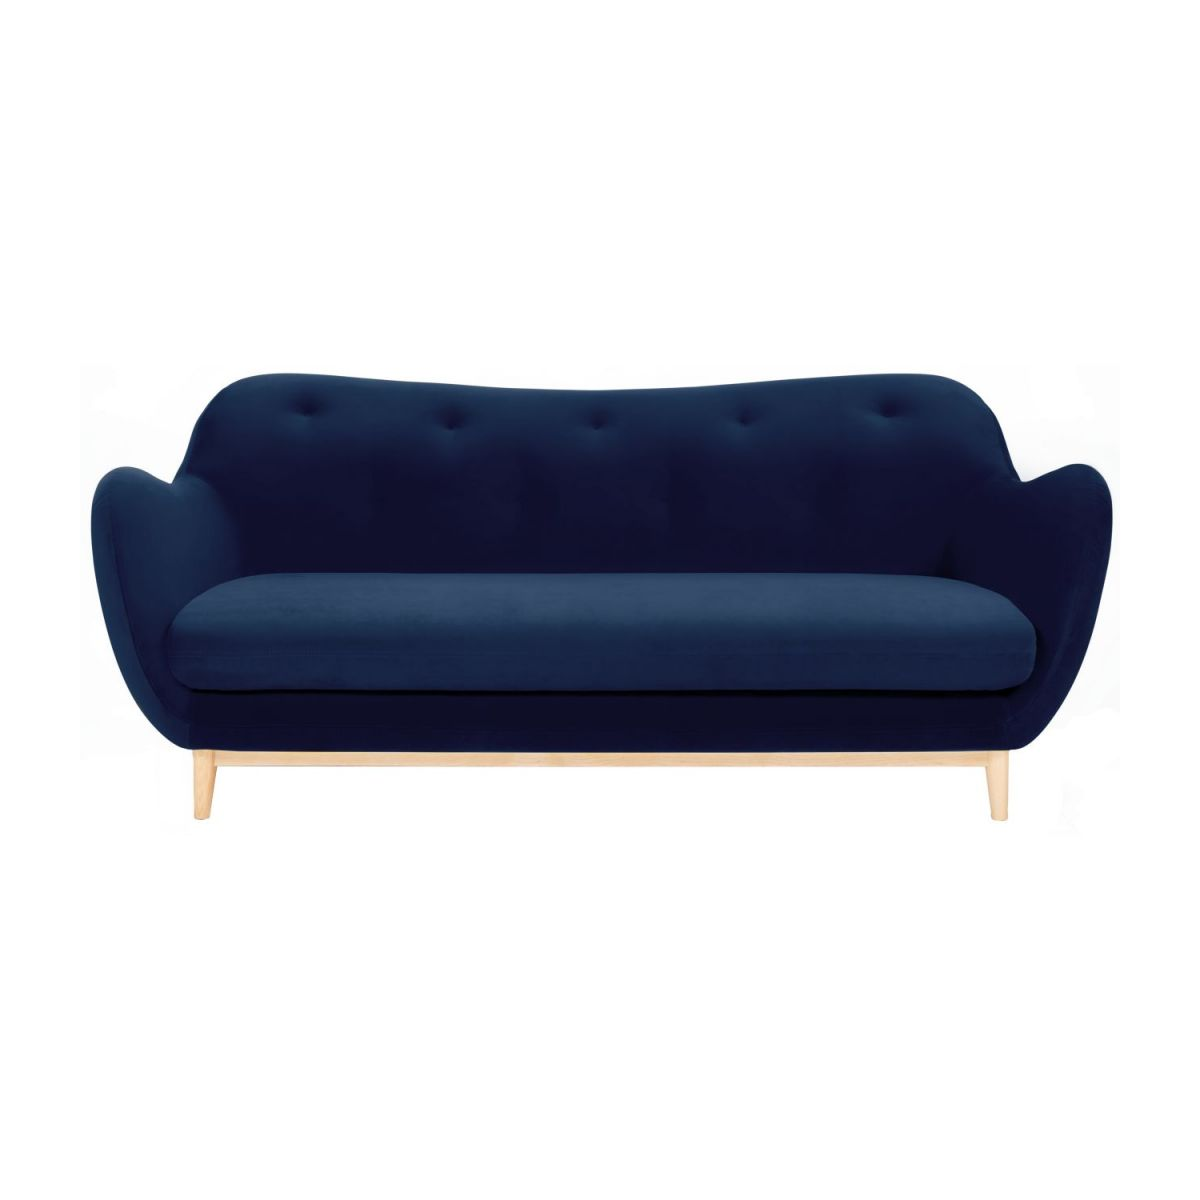 3-seat sofa made of velvet, blue n°3